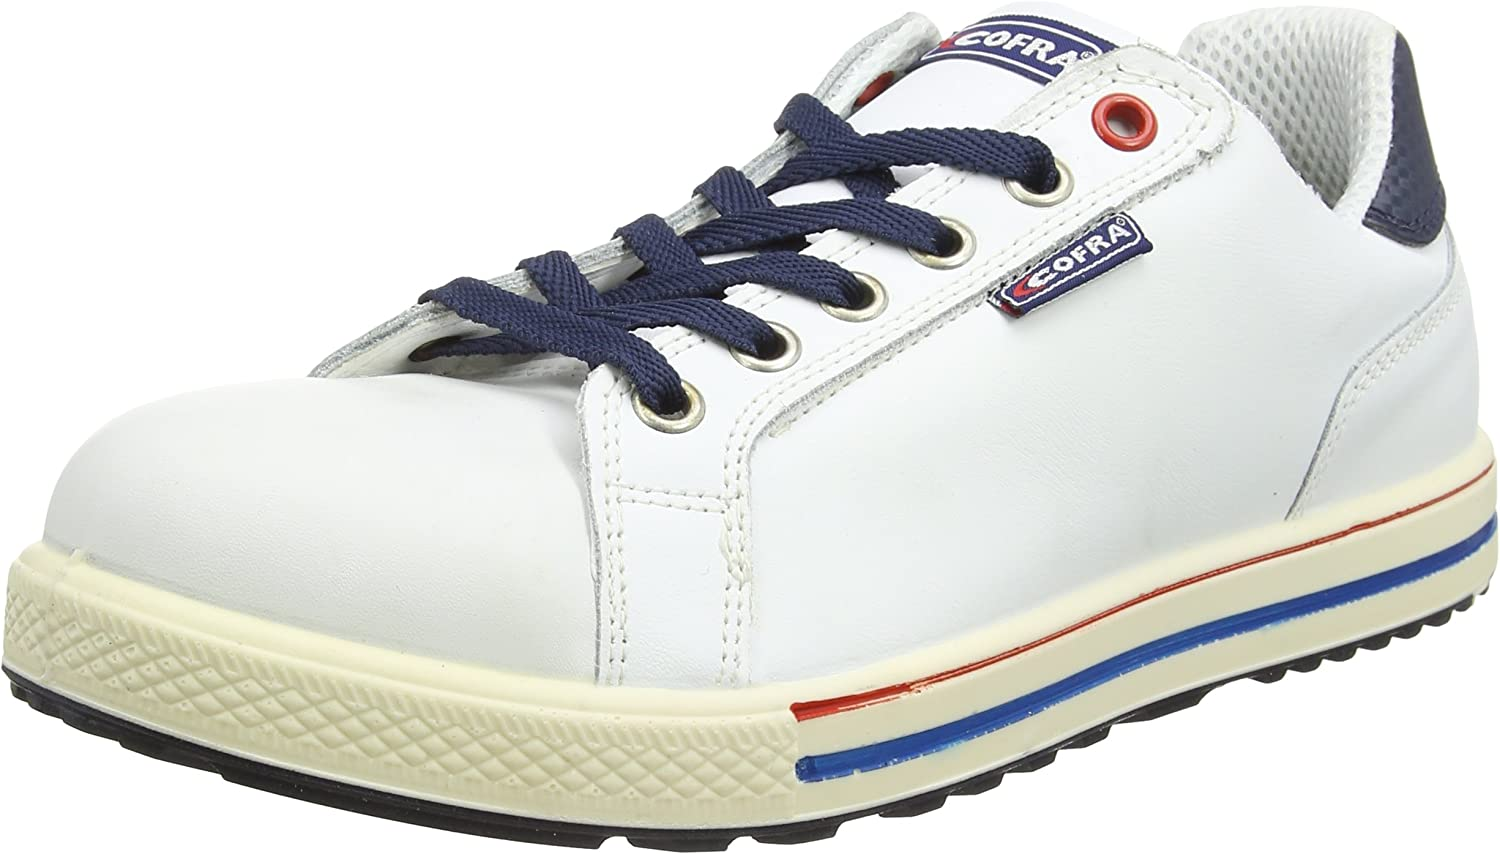 Cofra 35070-000.W43 Size 43 S3 SRC  Assist  Safety shoes -(Multicolord) White bluee